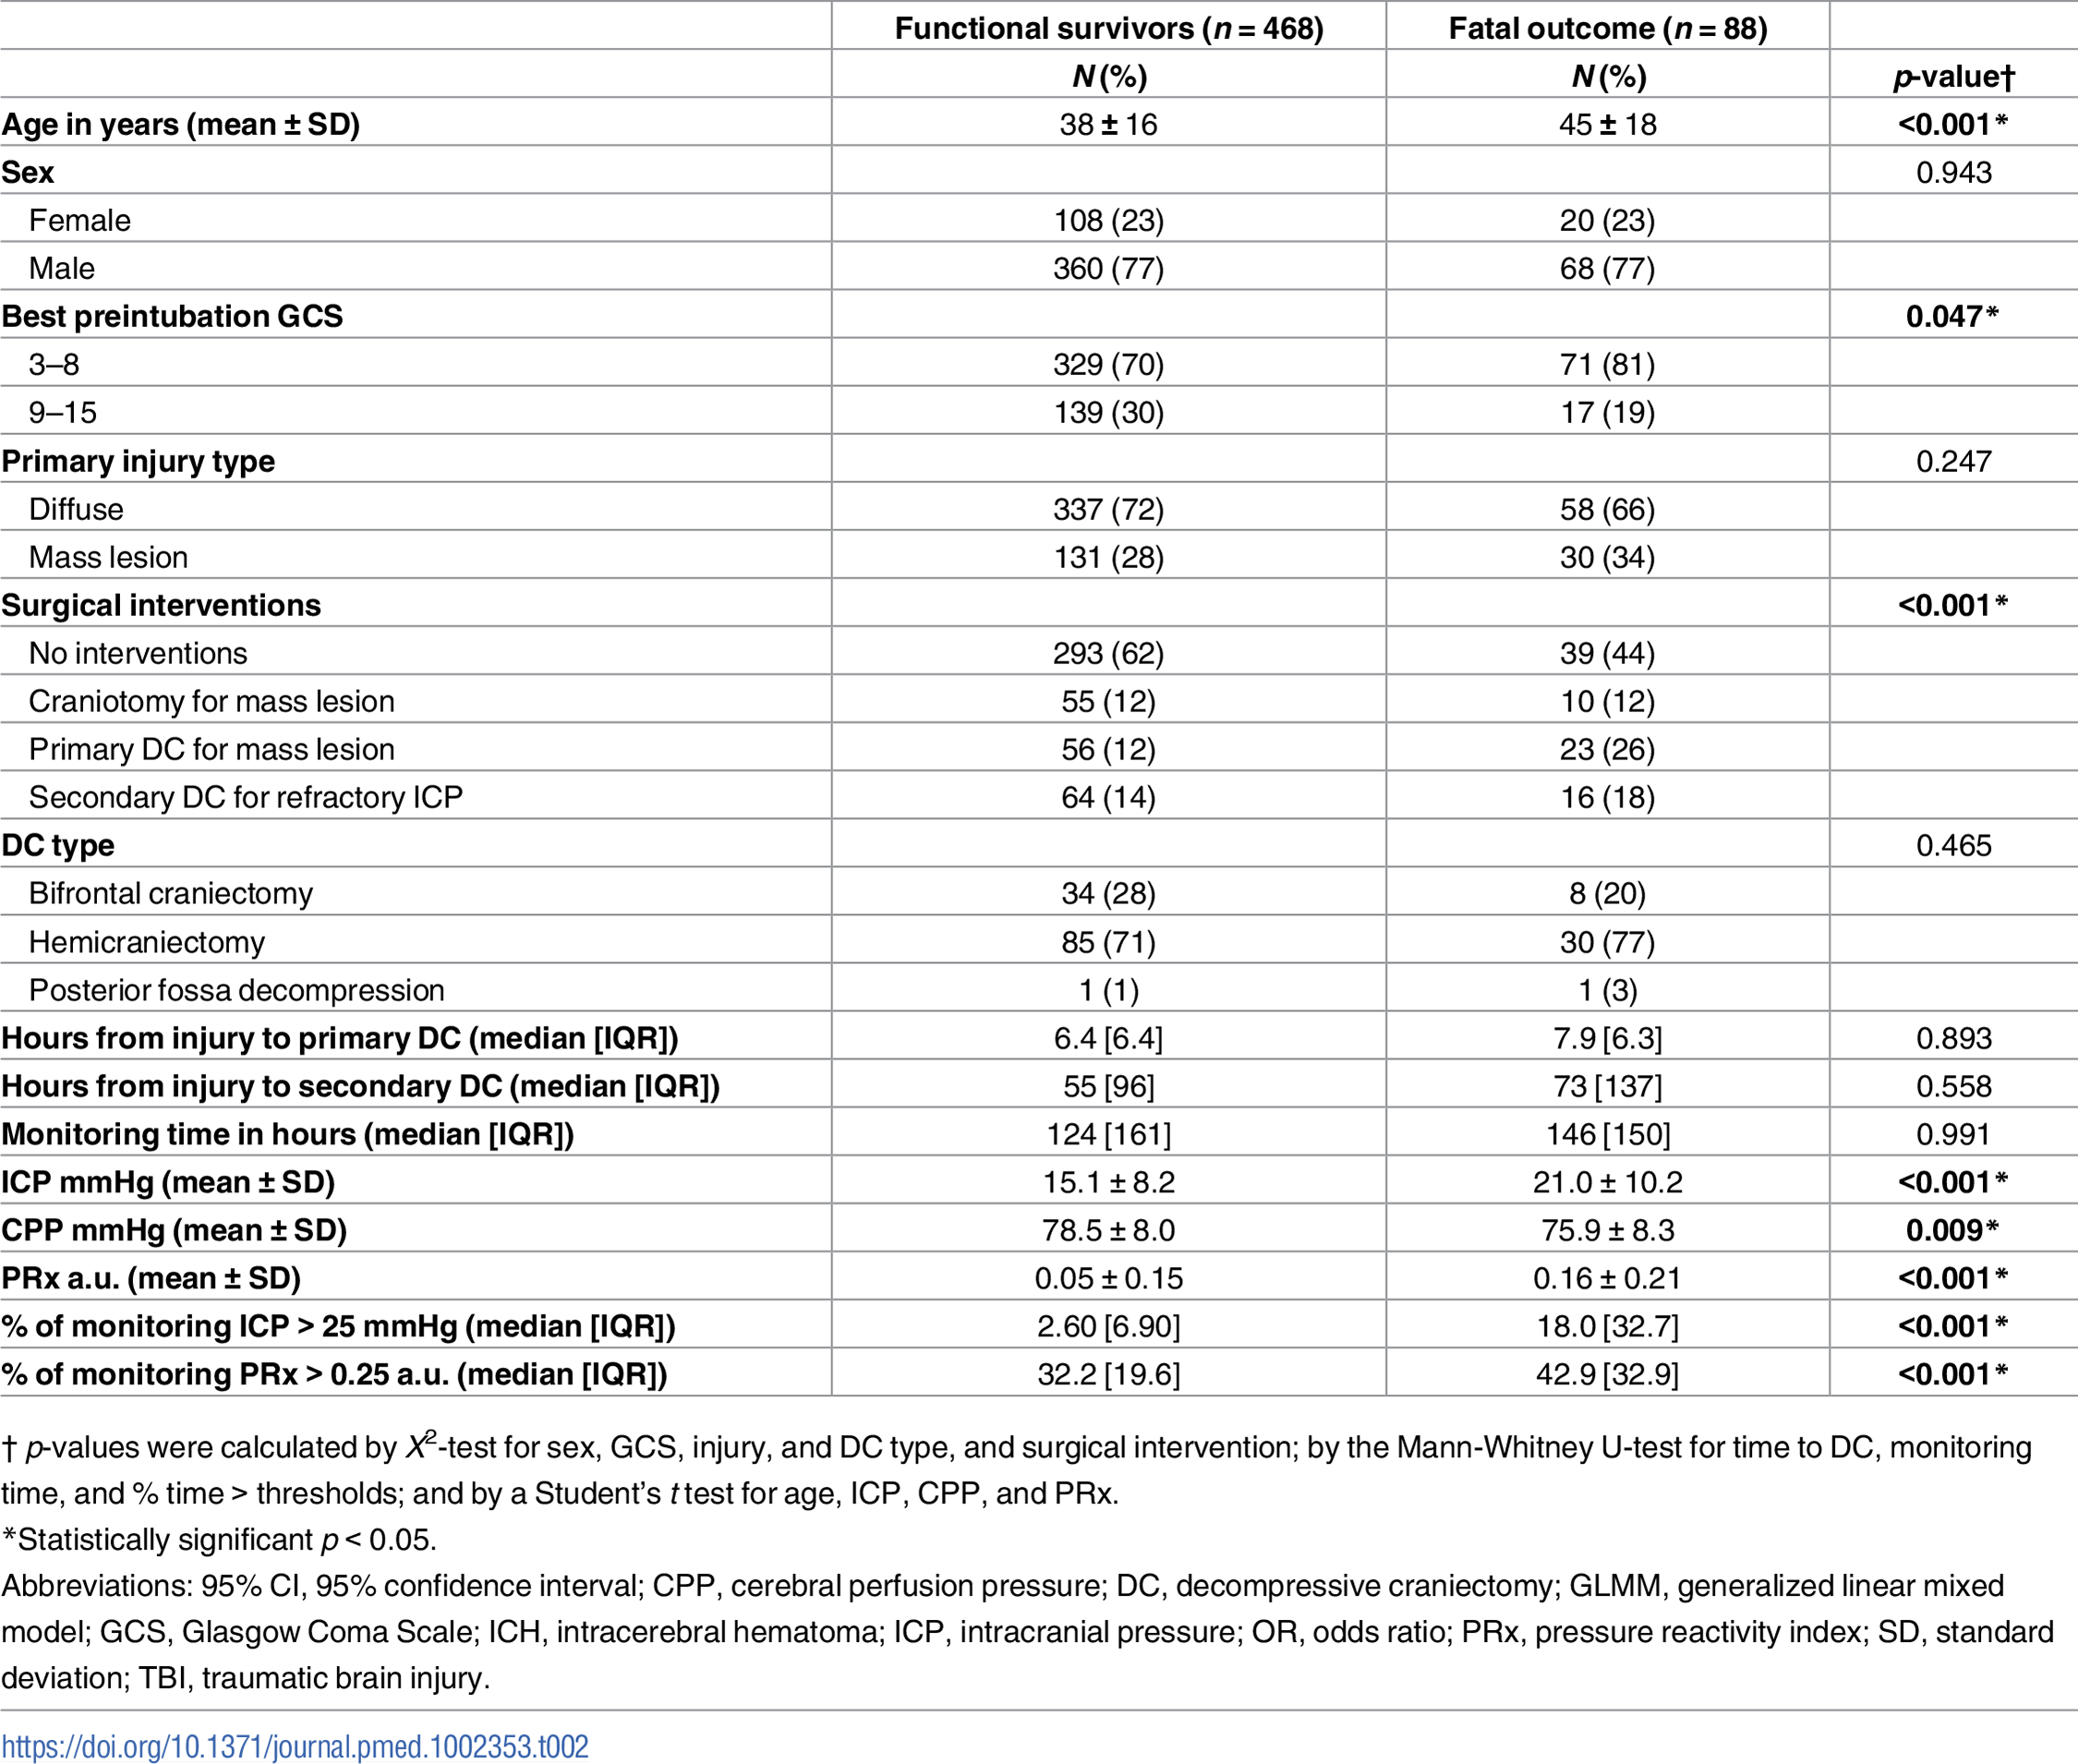 Baseline characteristics of 556 severe traumatic brain injury (sTBI) patients stratified by fatal outcome (due to nonsurvivable TBI or brain death) and functional survivors (ranging from severe disability to good recovery) at 6 months postinjury.